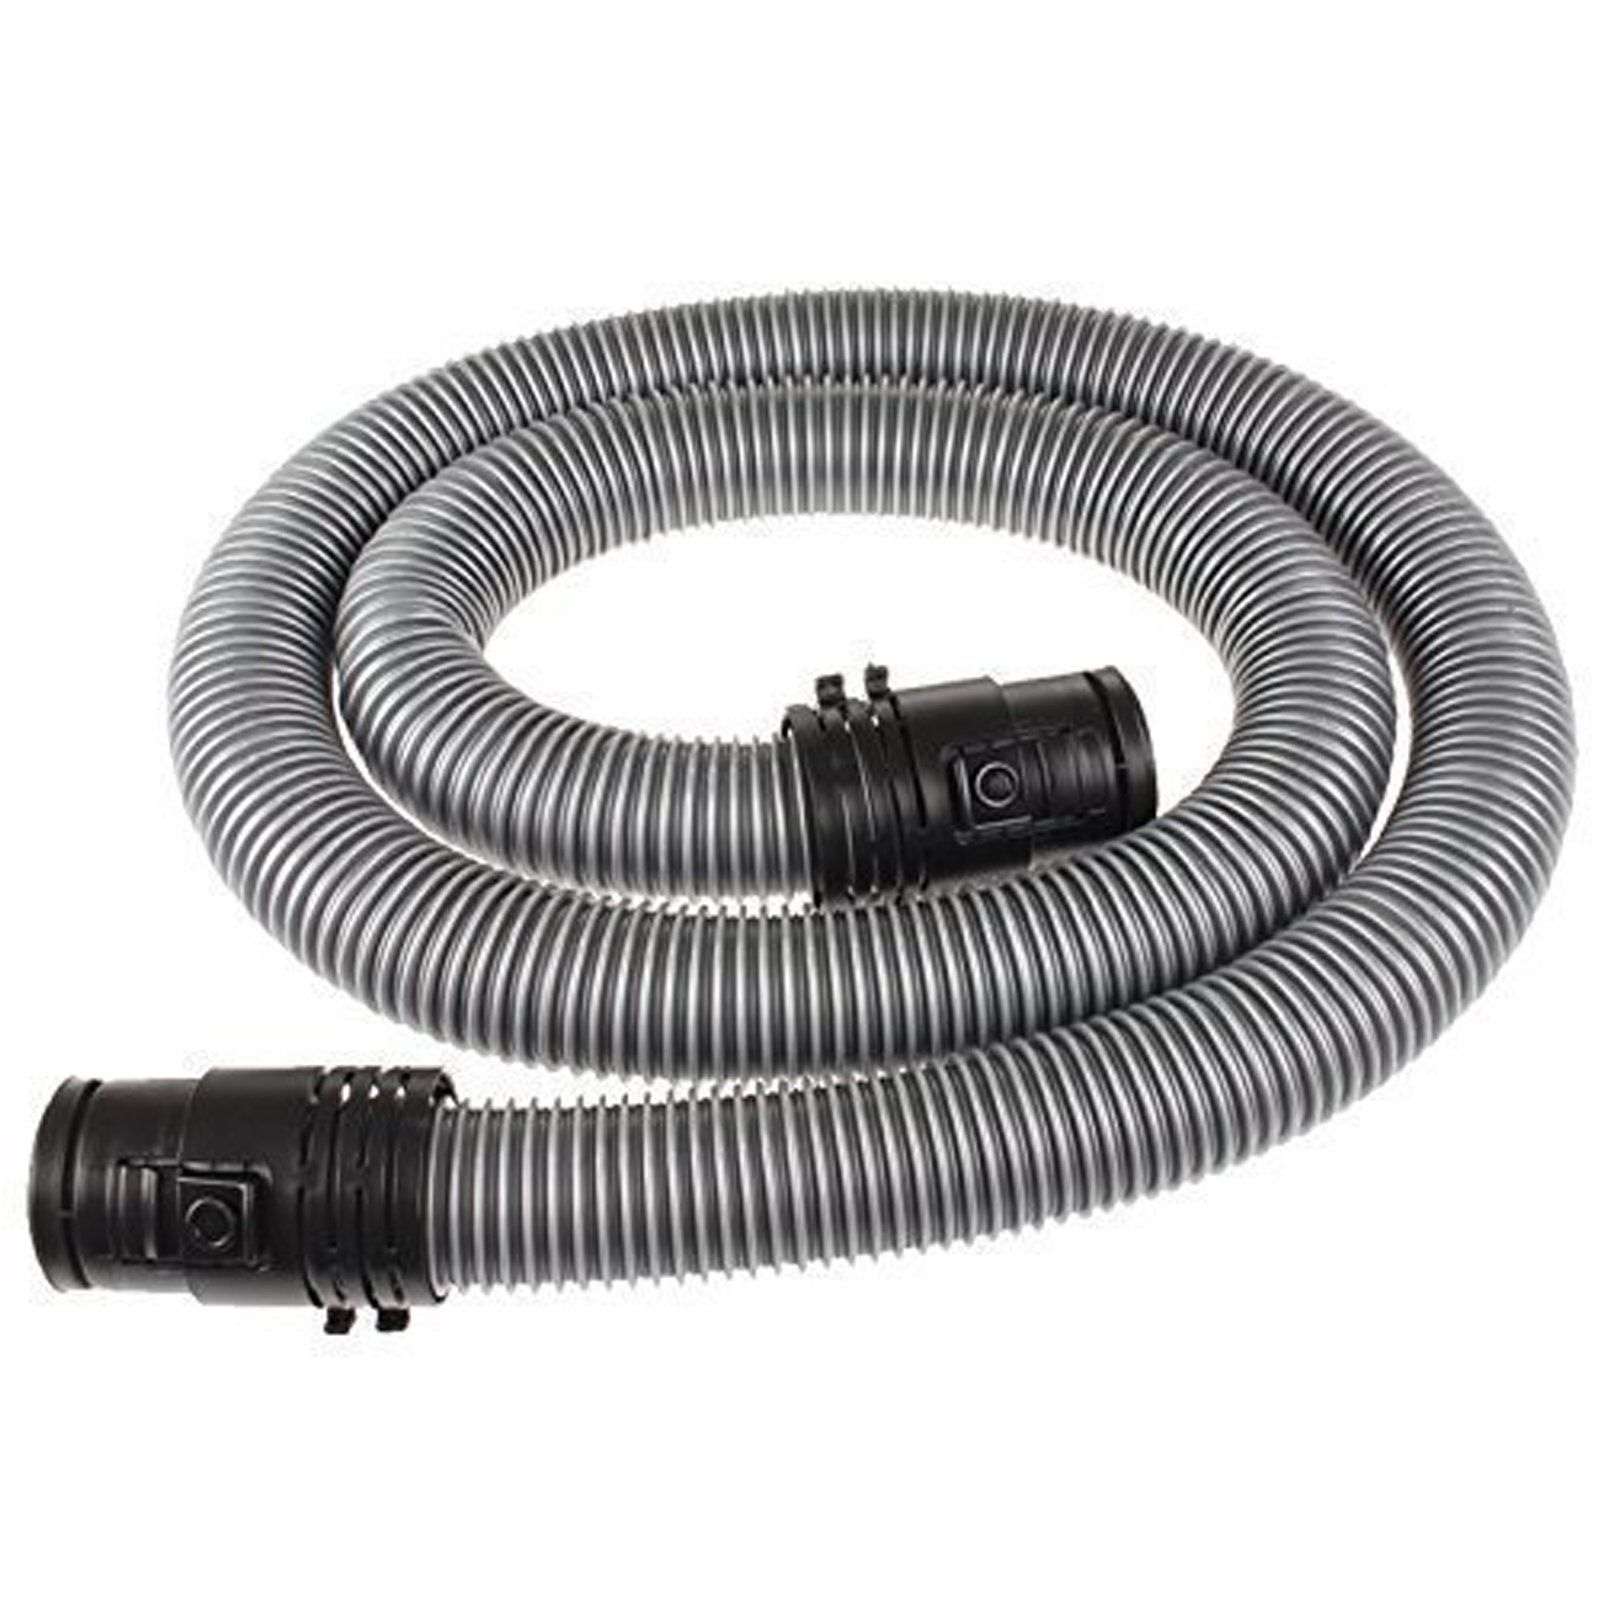 First4Spares 1.7 Flexible Suction Hose Pipe for Miele Canister Vacuum Cleaners 1-1/2'' 38mm